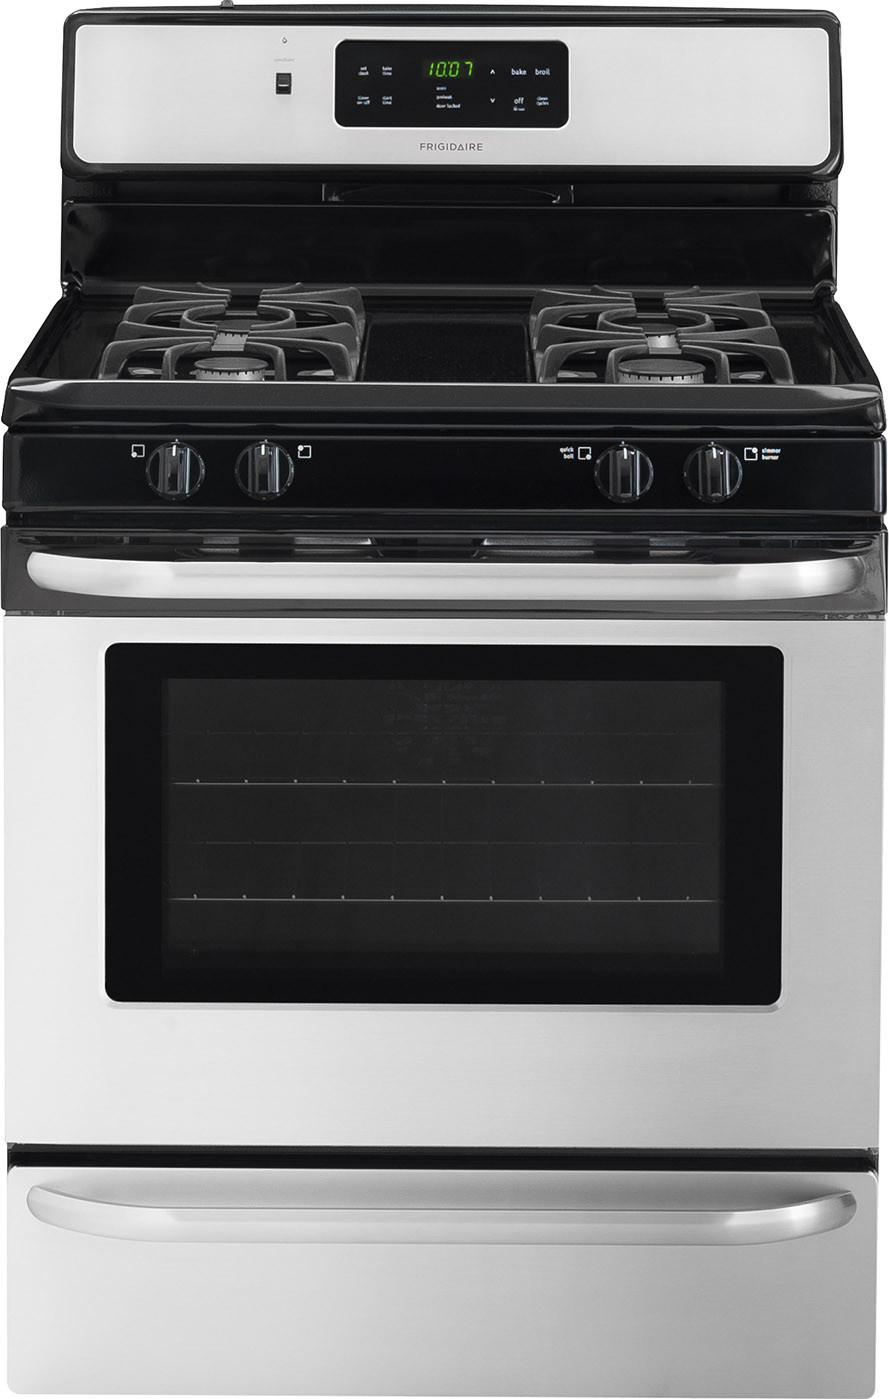 Frigidaire Ffgf3024rs 30 Inch Freestanding Gas Range With